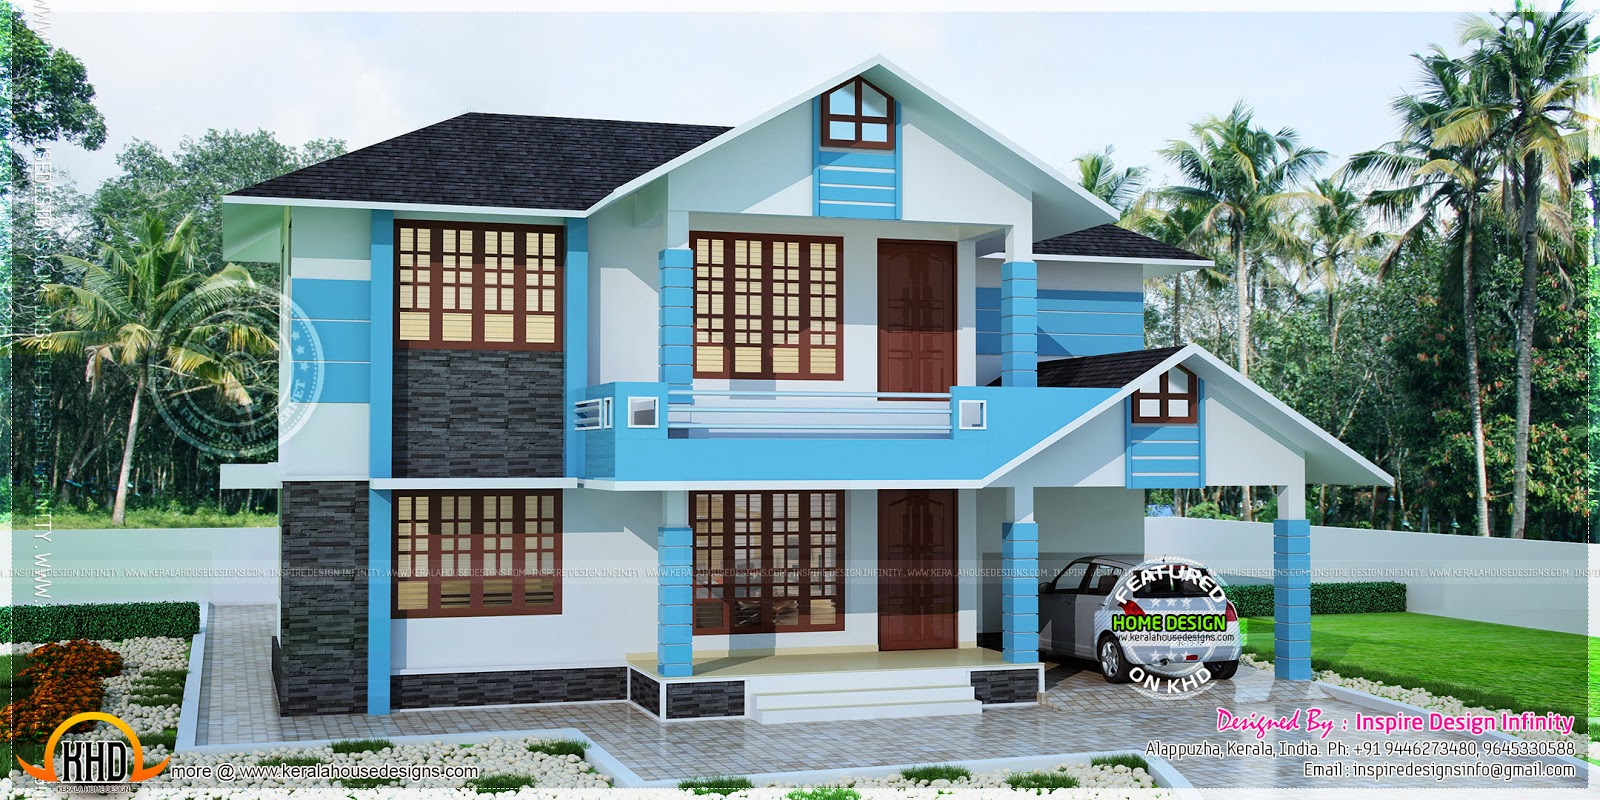 Simple house in 200 square yards kerala home design and 200 yards house design